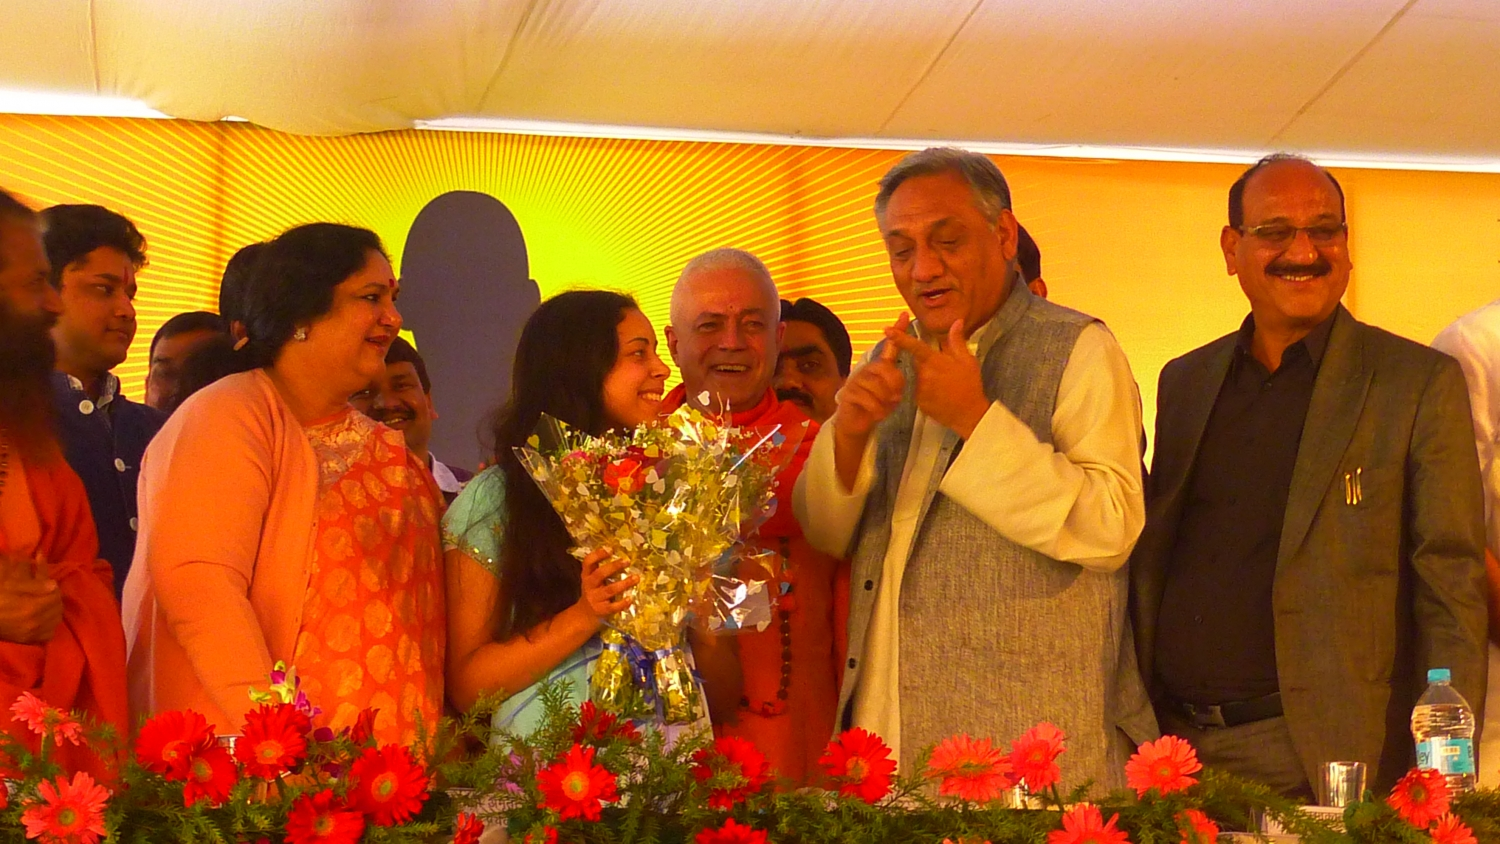 """In India, we knew one famous Portuguese, Cristiano Ronaldo. Now there are two, Cristiano Ronaldo and Nirájaní !""  - Shrí Vijay Bahuguna - Chief Minister of Uttarkhand"